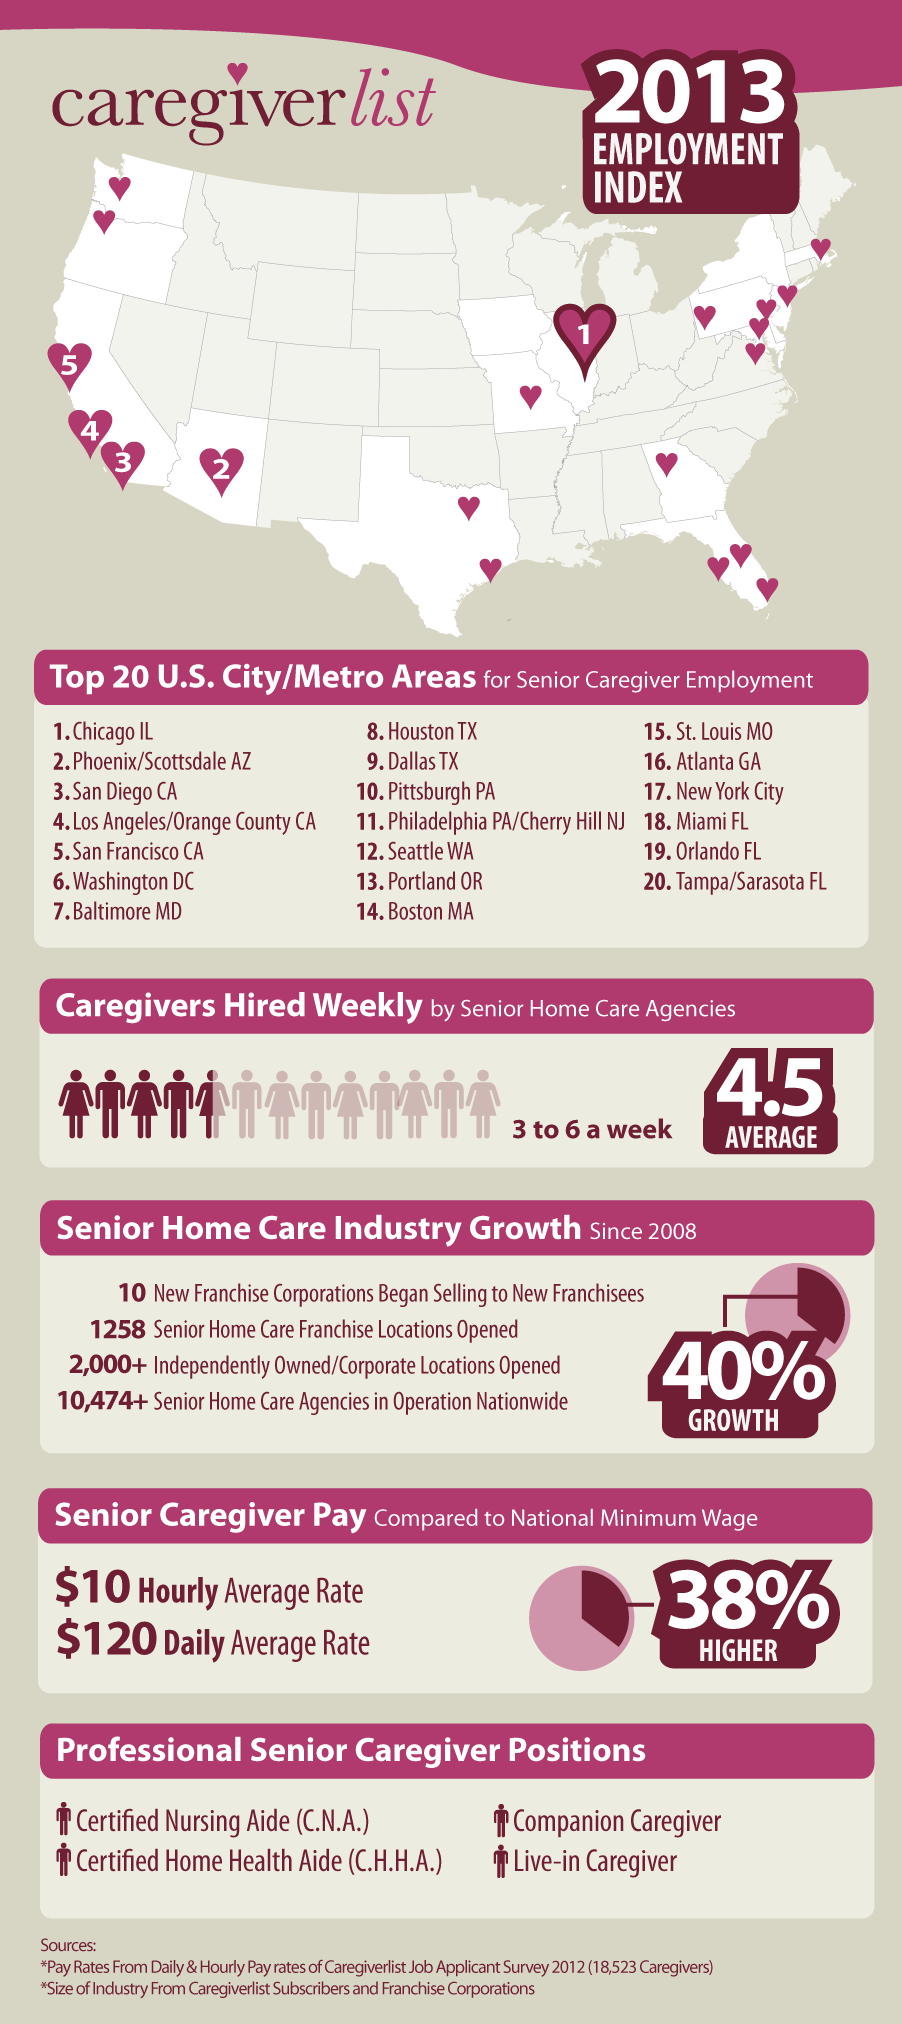 Senior Care News Caregiverlist Apply For Caregiver And